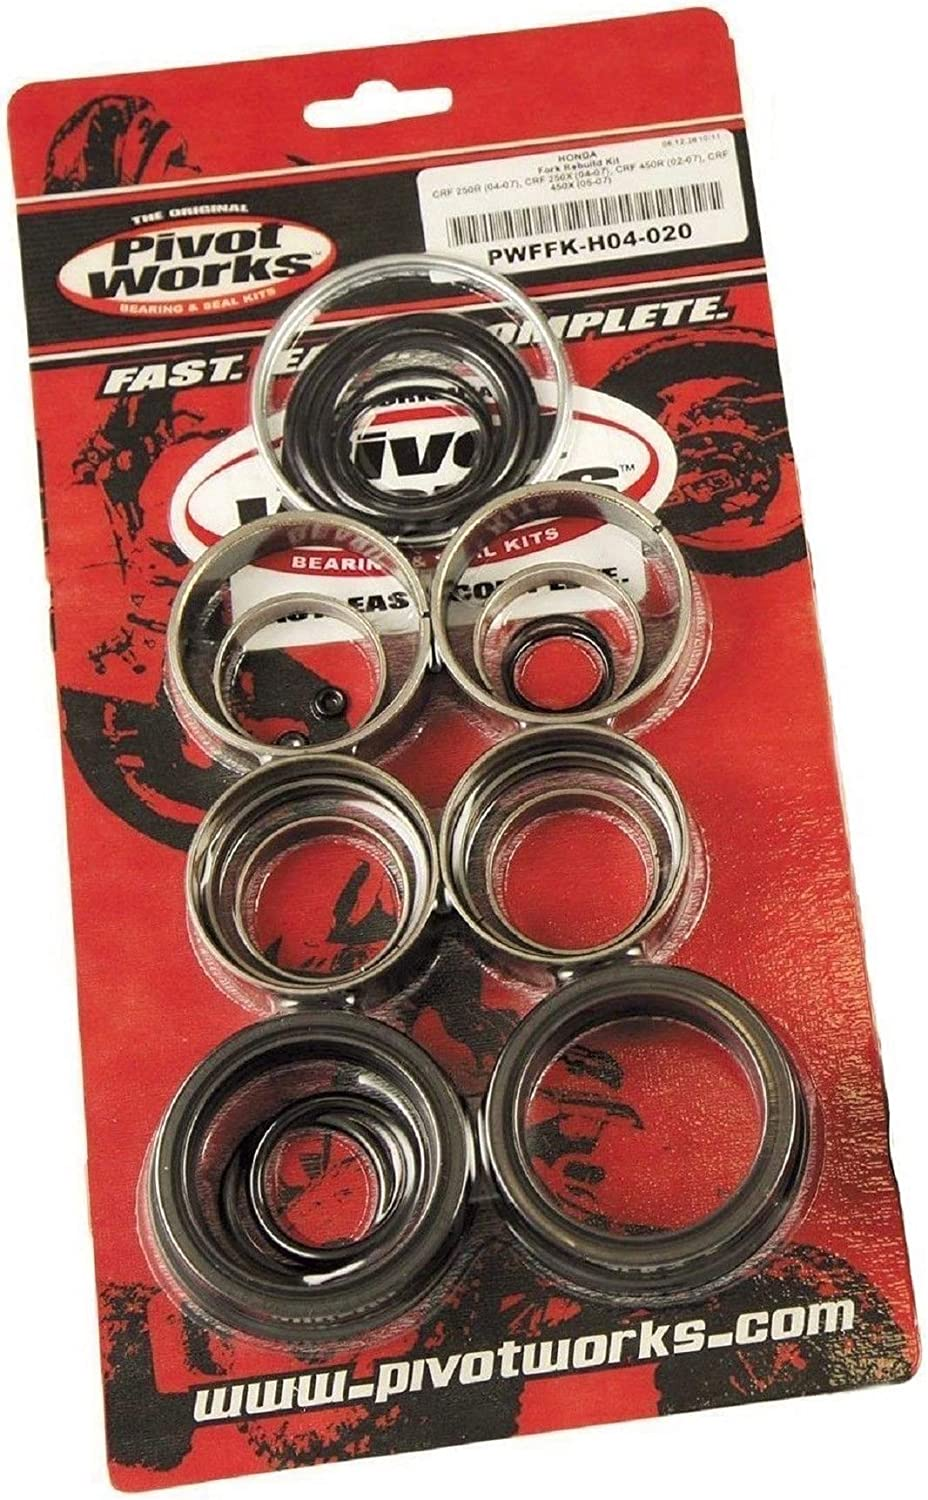 Pivot Works Fork Seal And Bushing Kit Seal/Bushing Forks For Honda CRF250R 2004-2009 / CRF250X 2004-2009 / CRF450R 2002-2008 / CRF450X 2005-2009 - PWFFK-H04-020